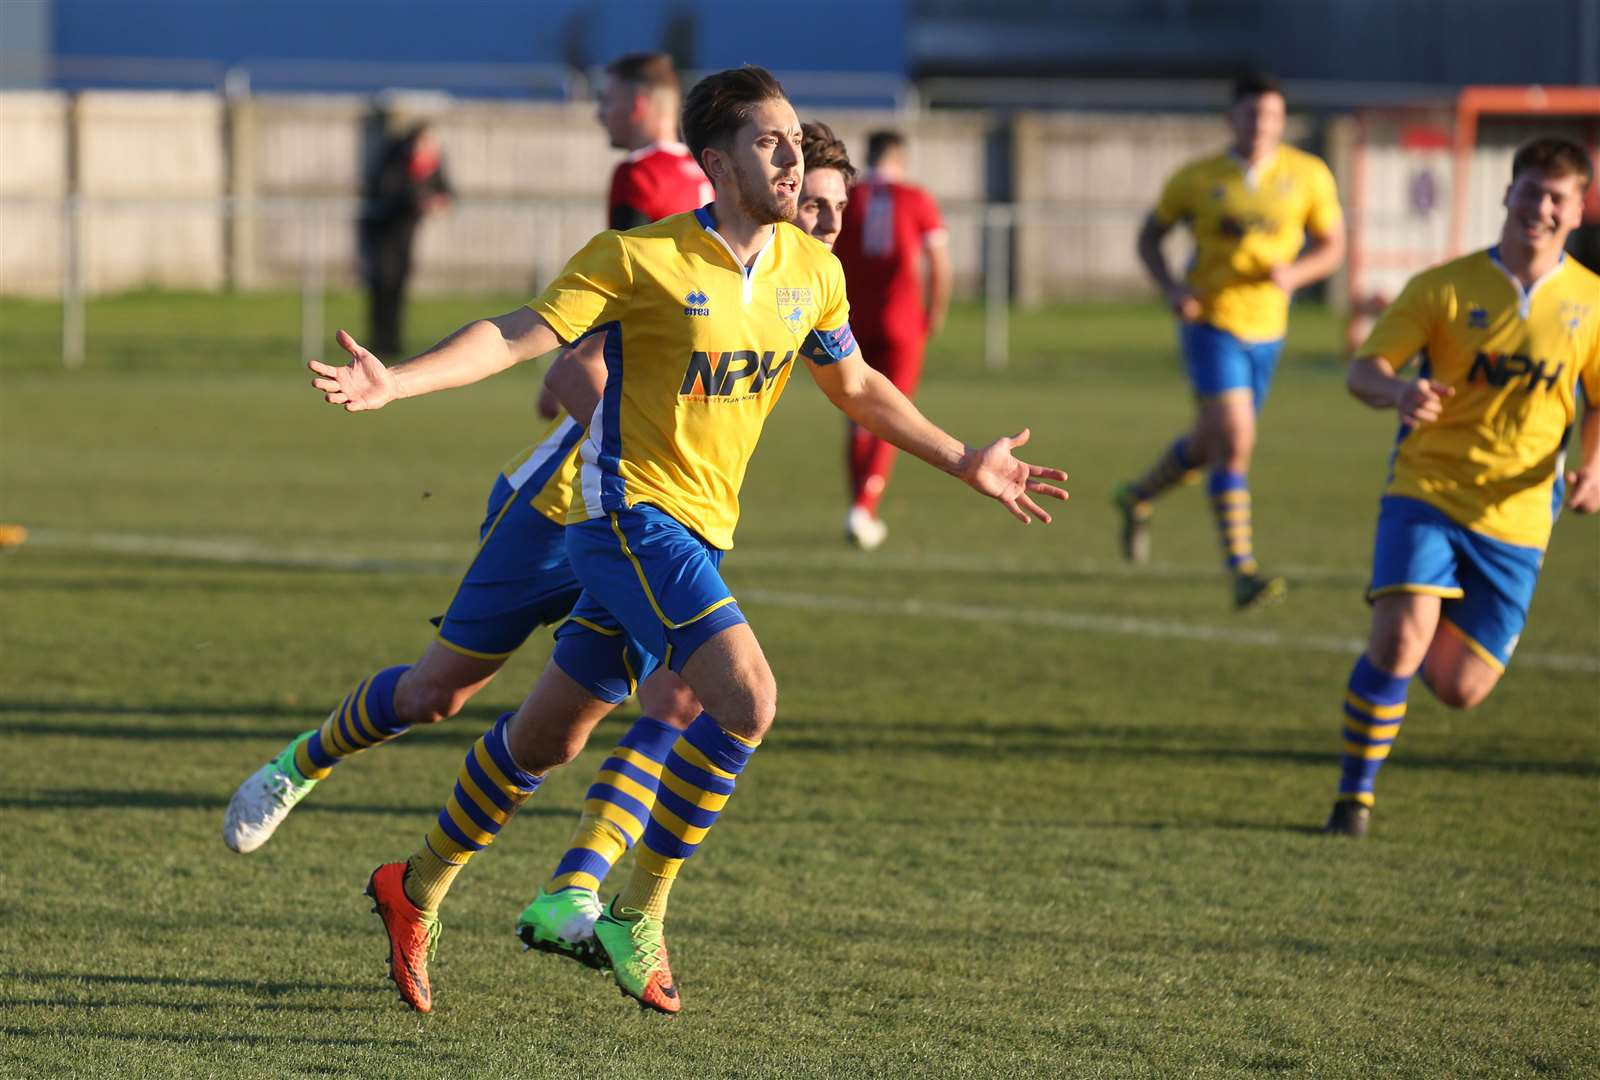 Haverhill Rovers v Newmarket Town - Newmarkets Jack Watson celebrates their second goal..Pic - Richard Marsham. (5187125)